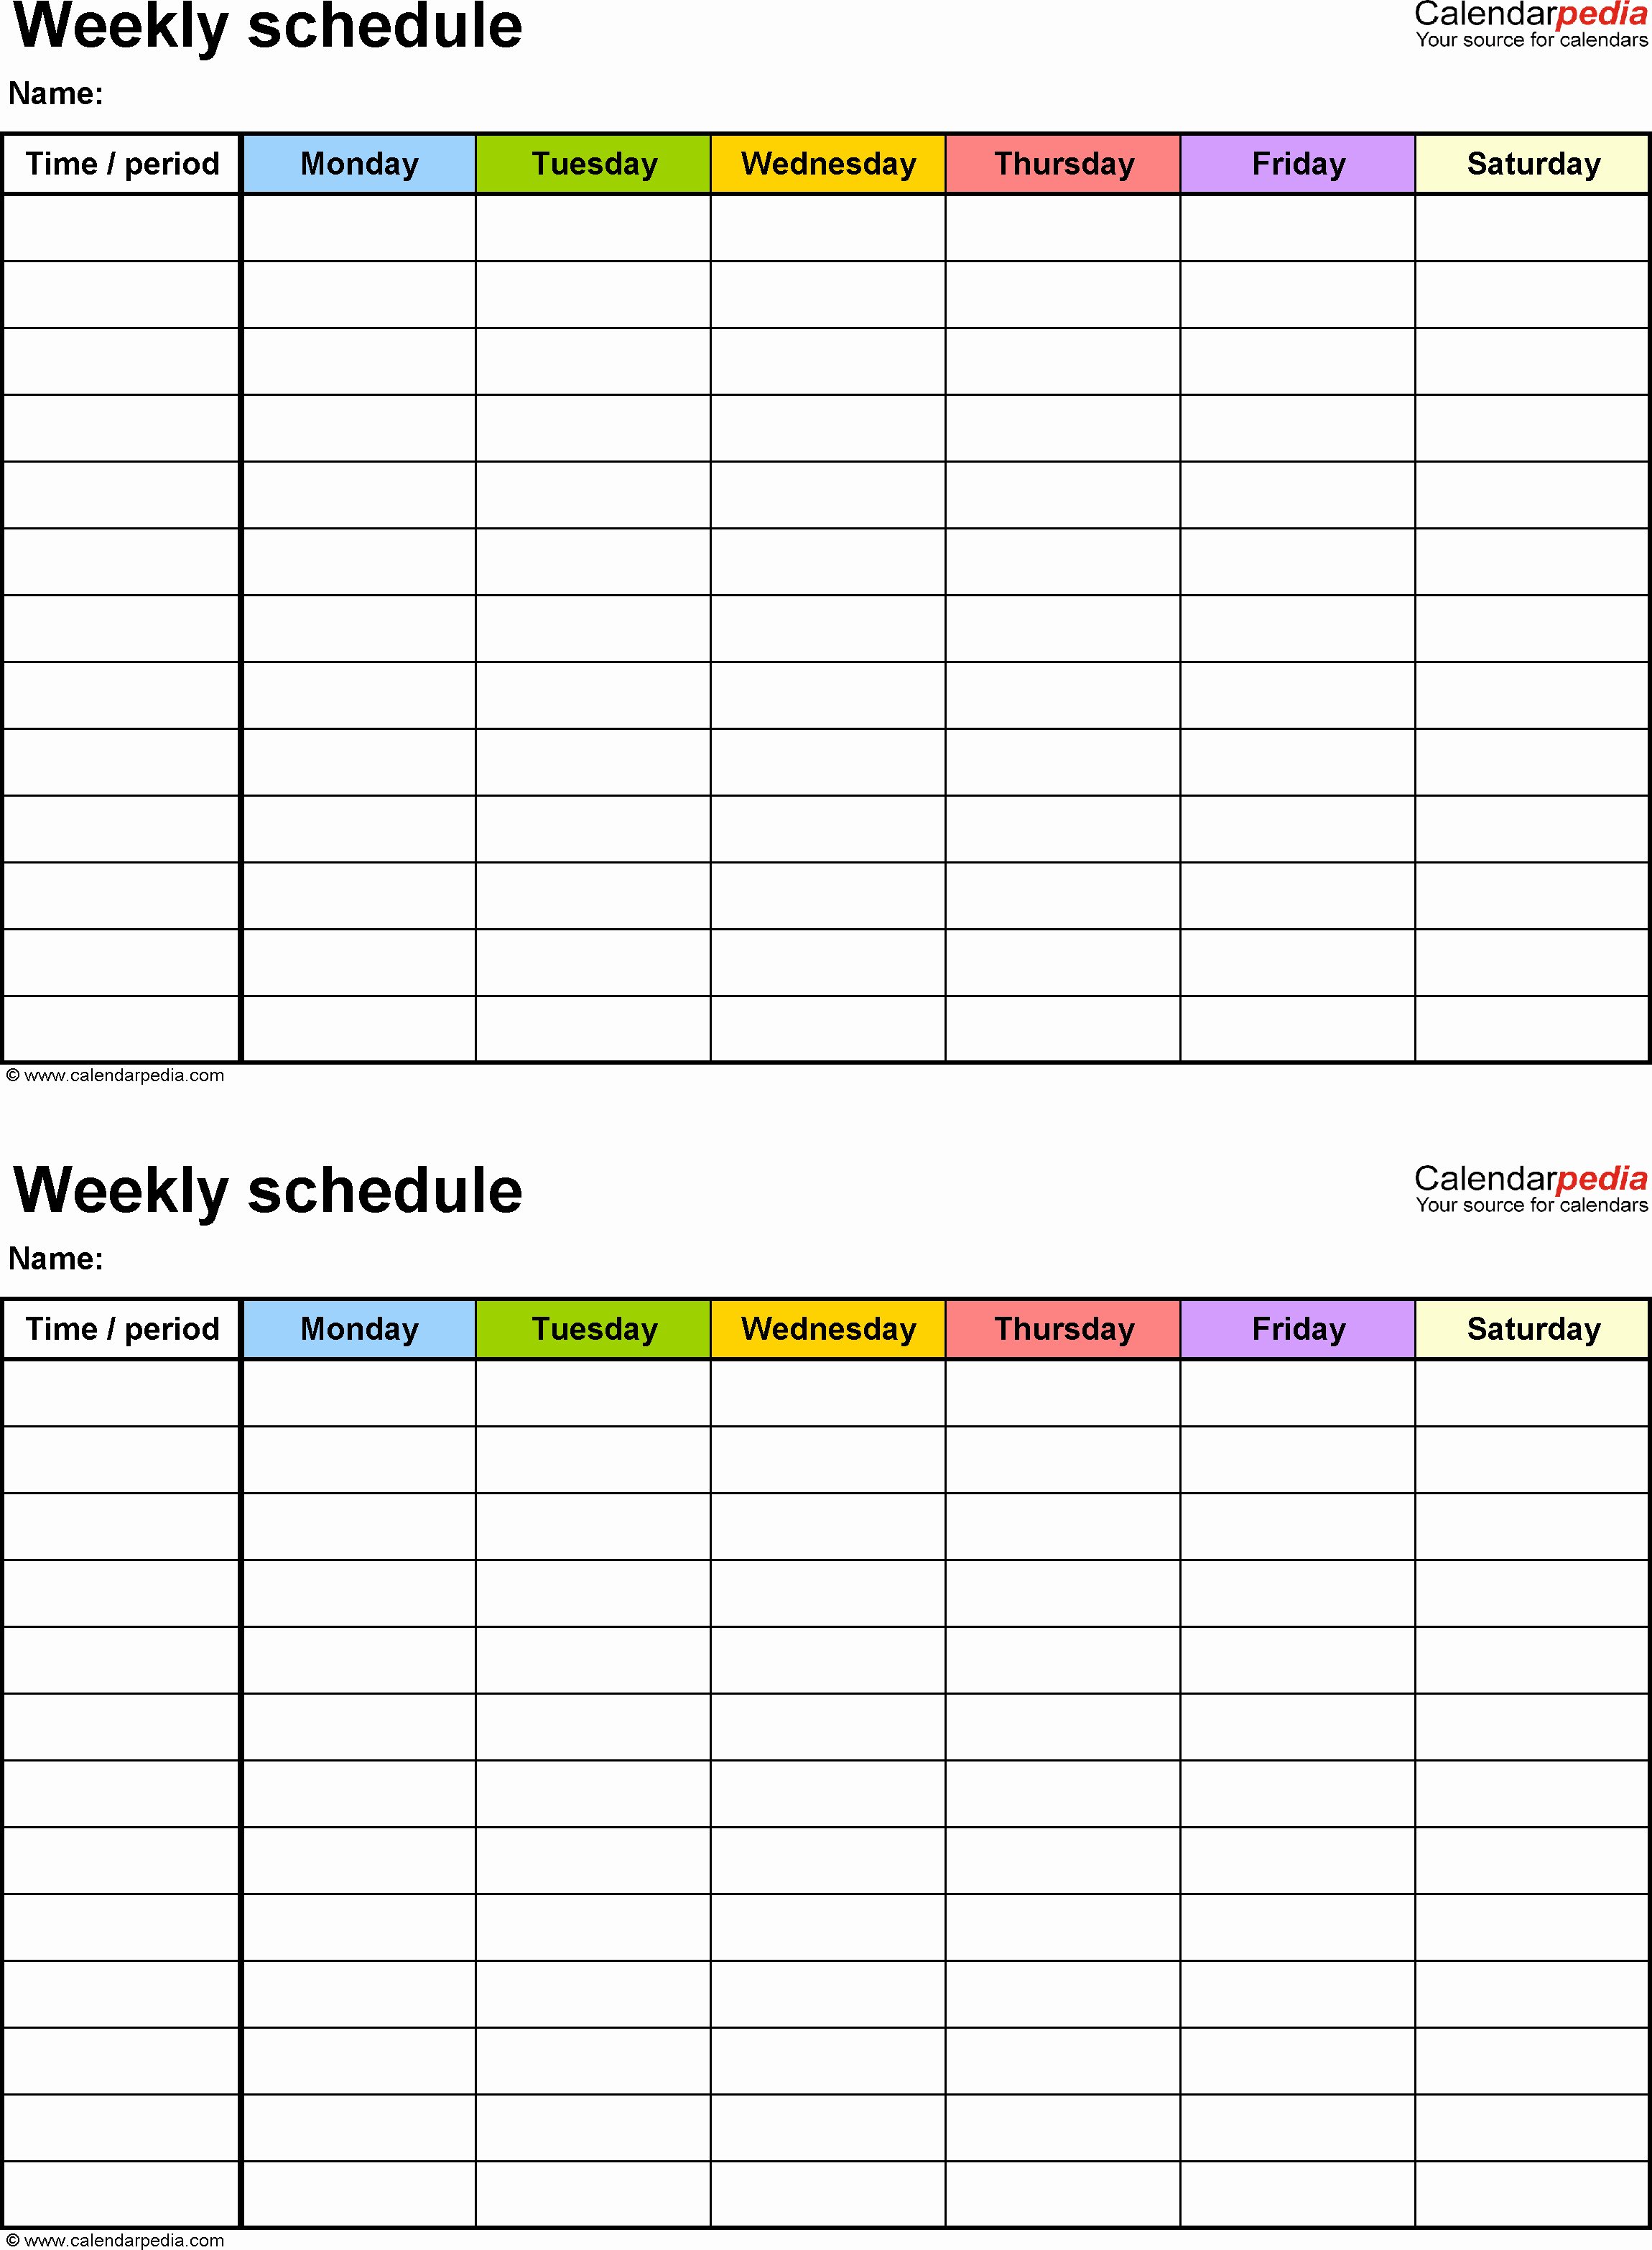 Create Calendar In Word Luxury Weekly Schedule Template for Word Version 9 2 Schedules